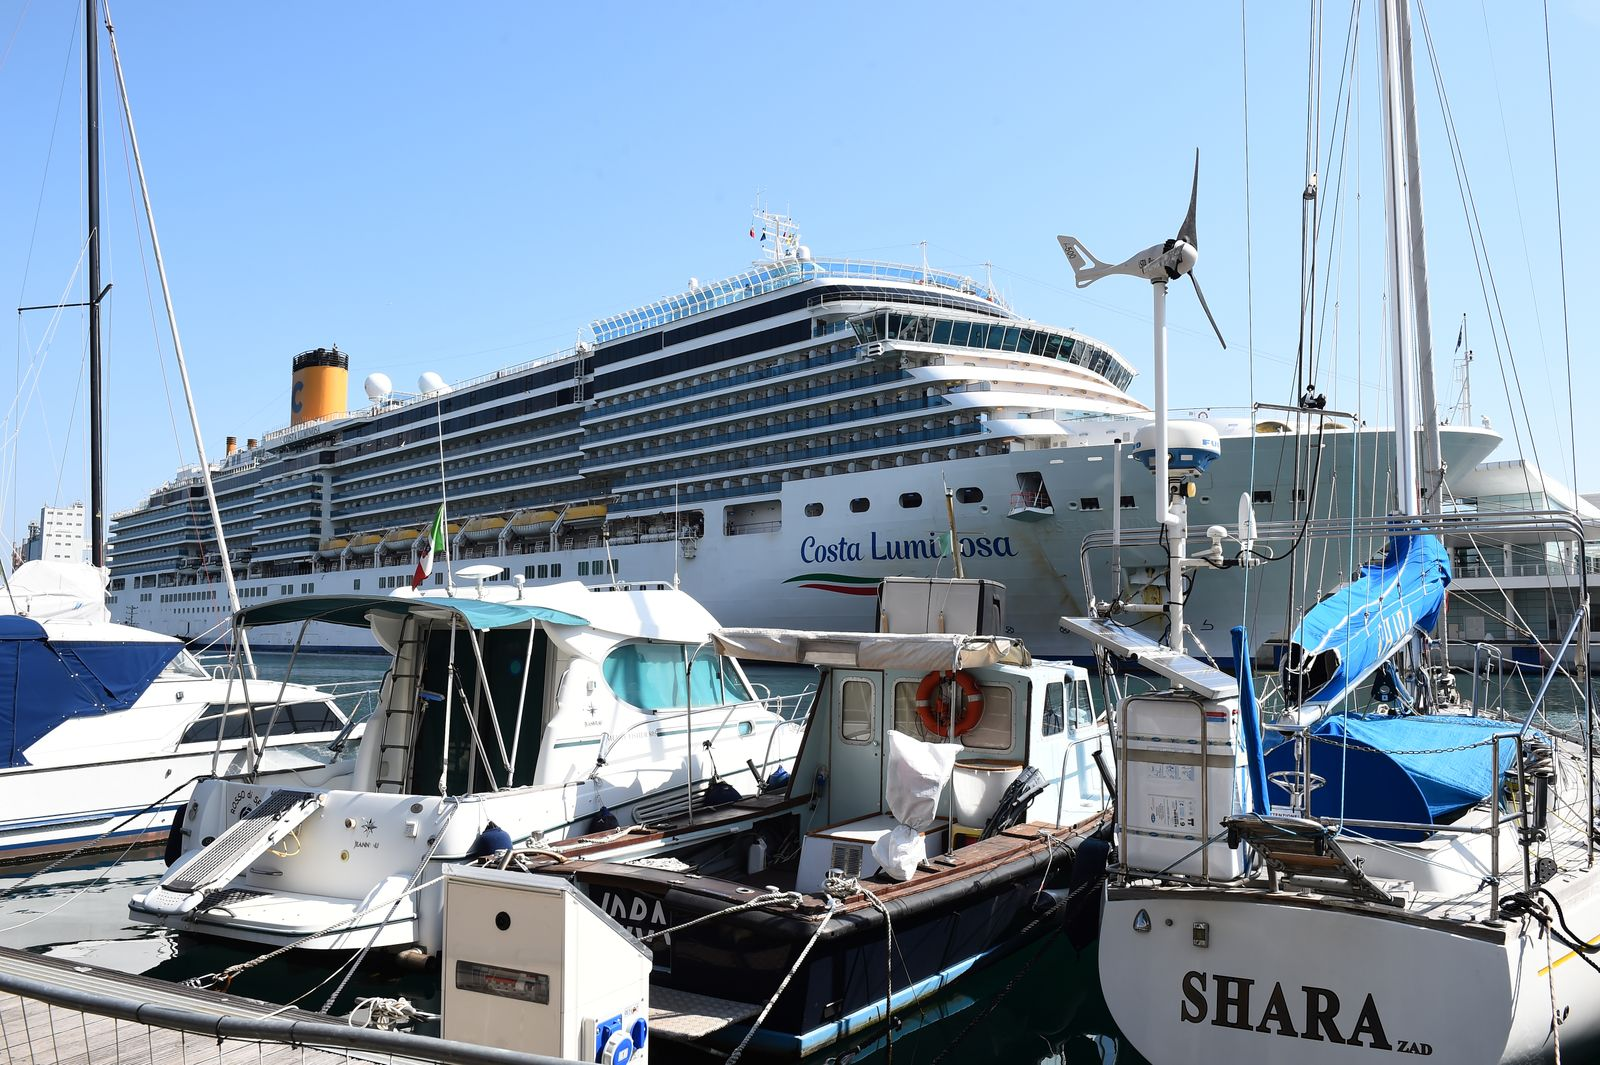 A view of the Costa Luminosa cruise ship that was hit by the coronavirus disease (COVID-19) as it is docked at the port of Savona, near Genoa